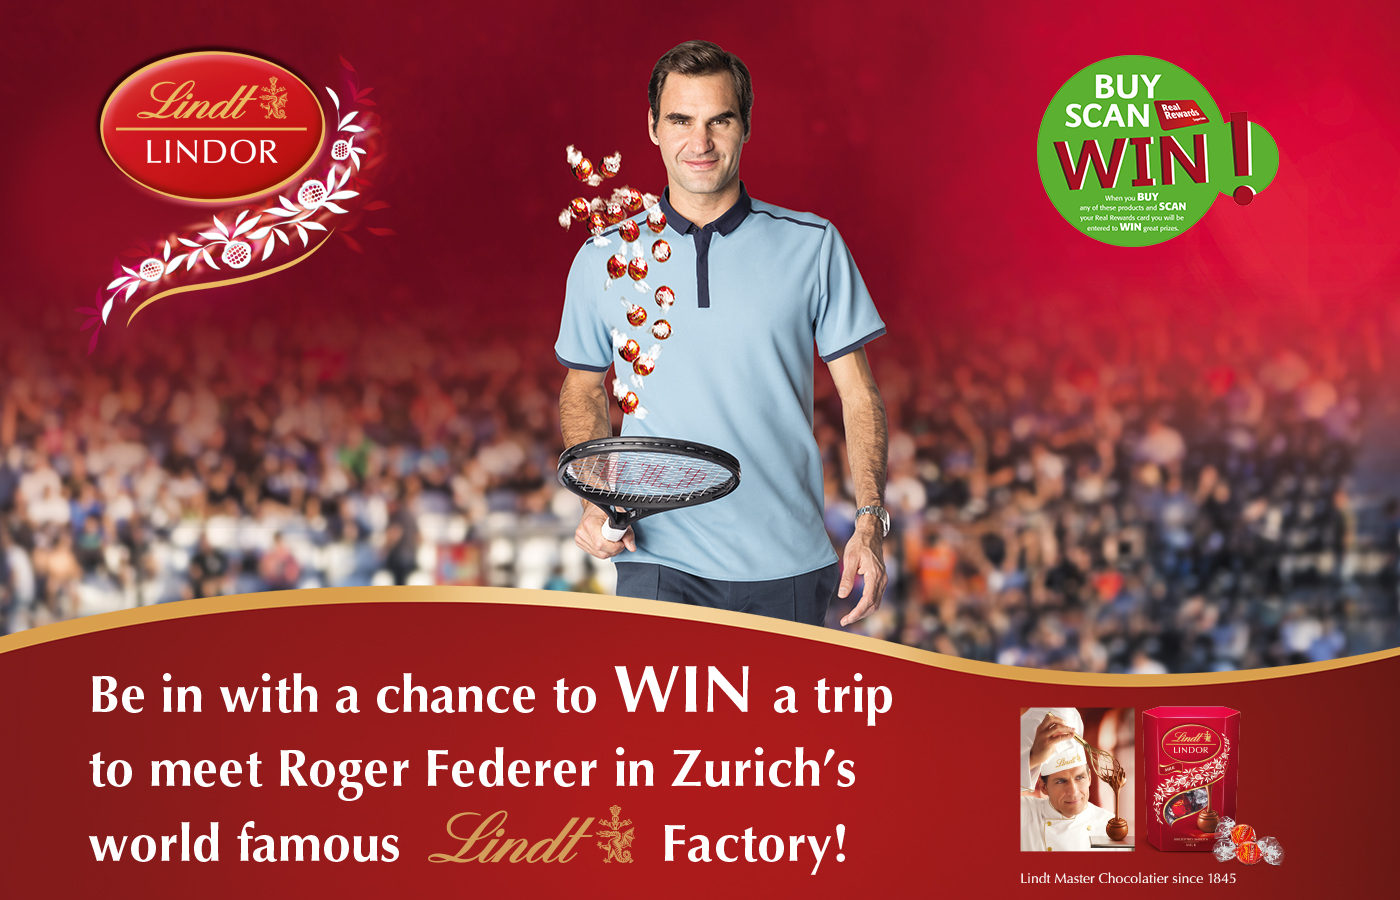 WIN a trip to meet Roger Federer in Zurich's world famous Lindt Factory!